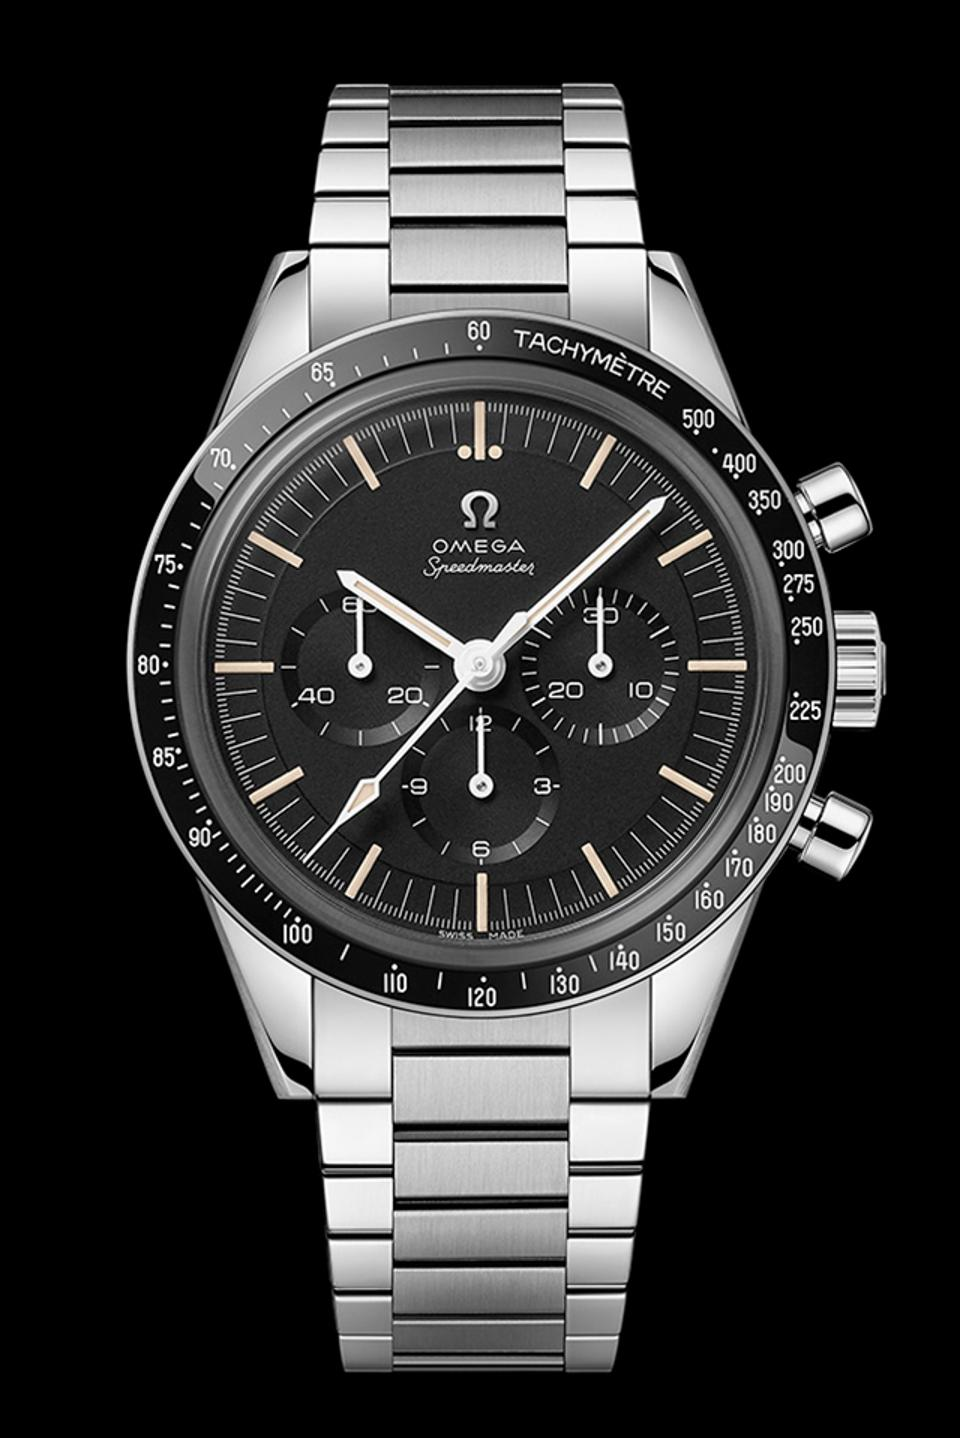 The Omega Speedmaster 321 Moonwatch in stainless steel.